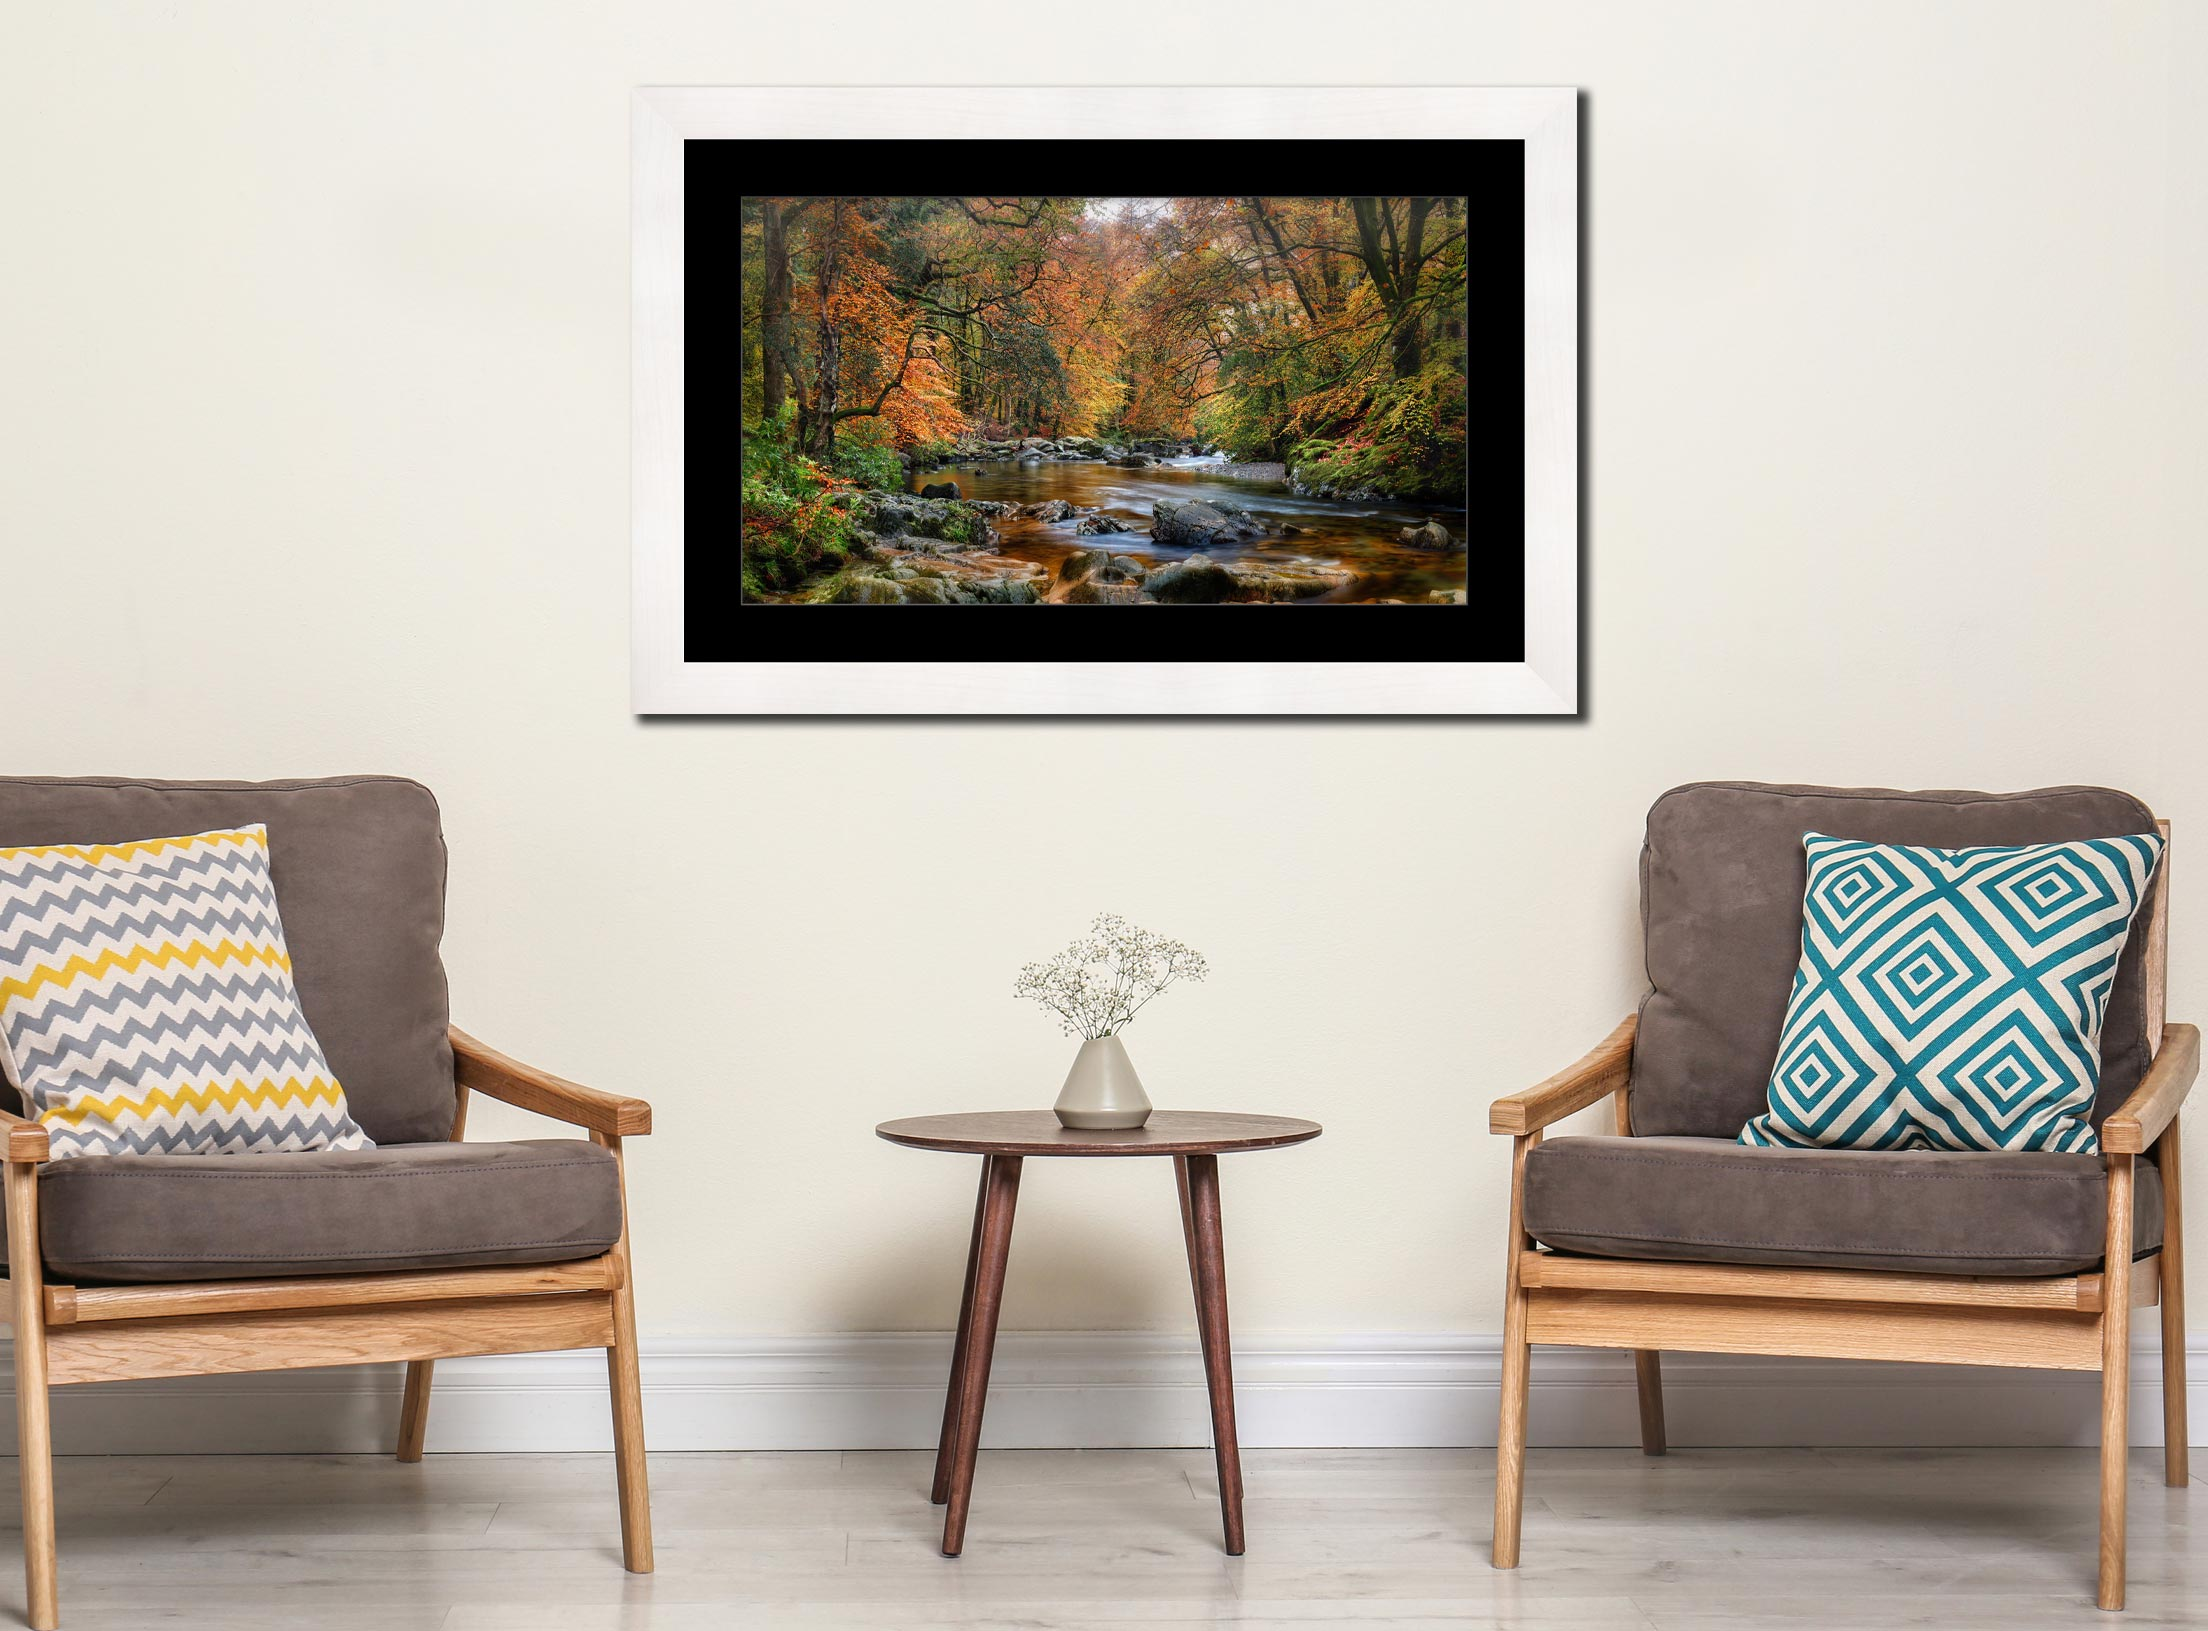 River Esk in Autumn - Framed Print with Mount on Wall